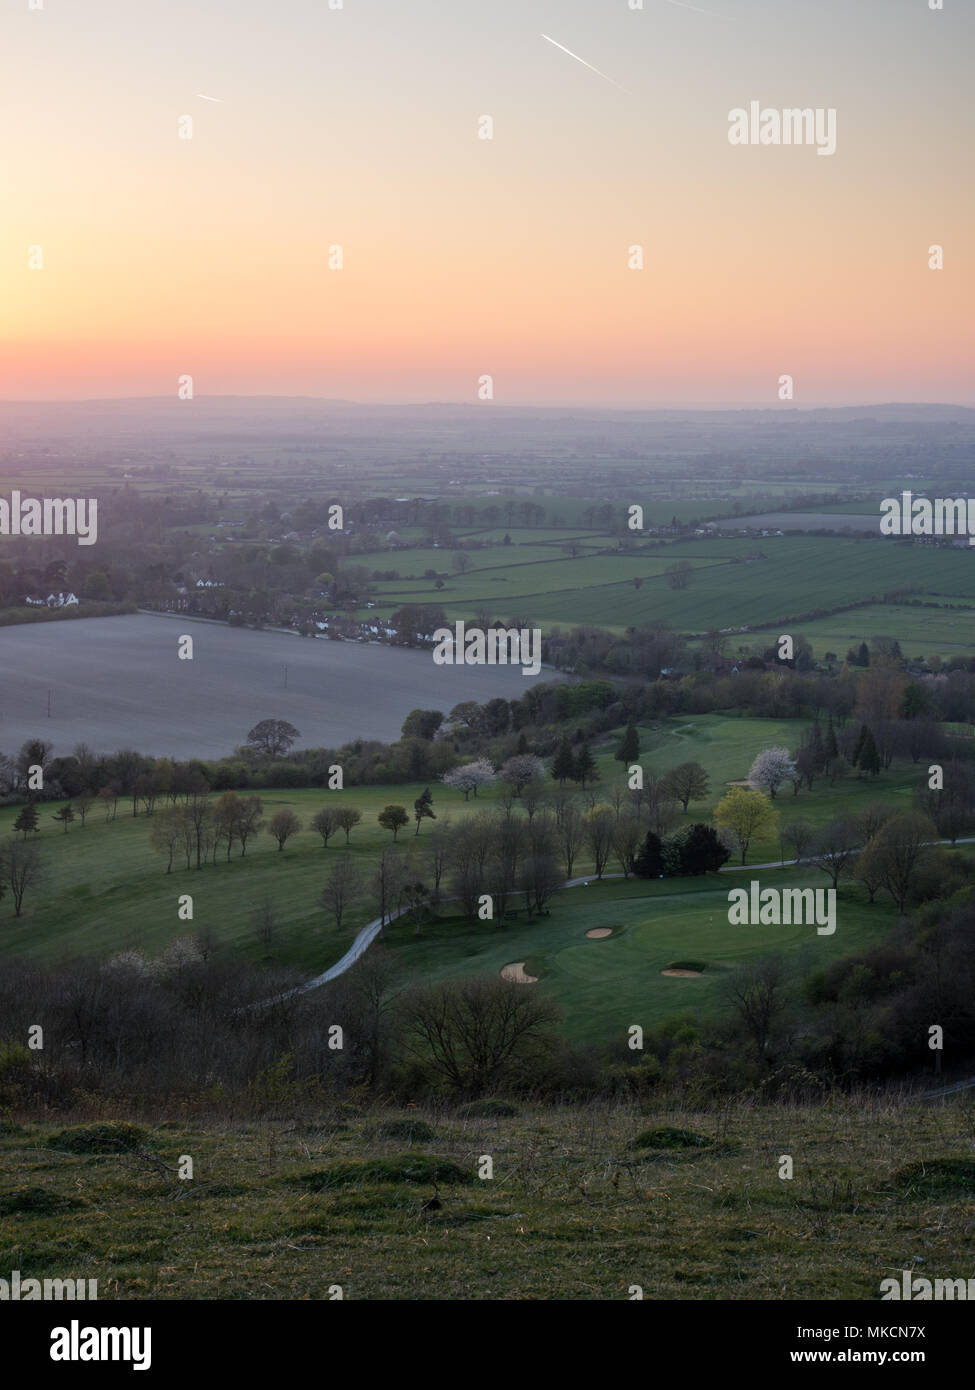 The sun sets over fields and villages in the agricultural landscape of the Aylesbury Vale, viewed from Combe Hill on the scarp of the Chiltern Hills. - Stock Image